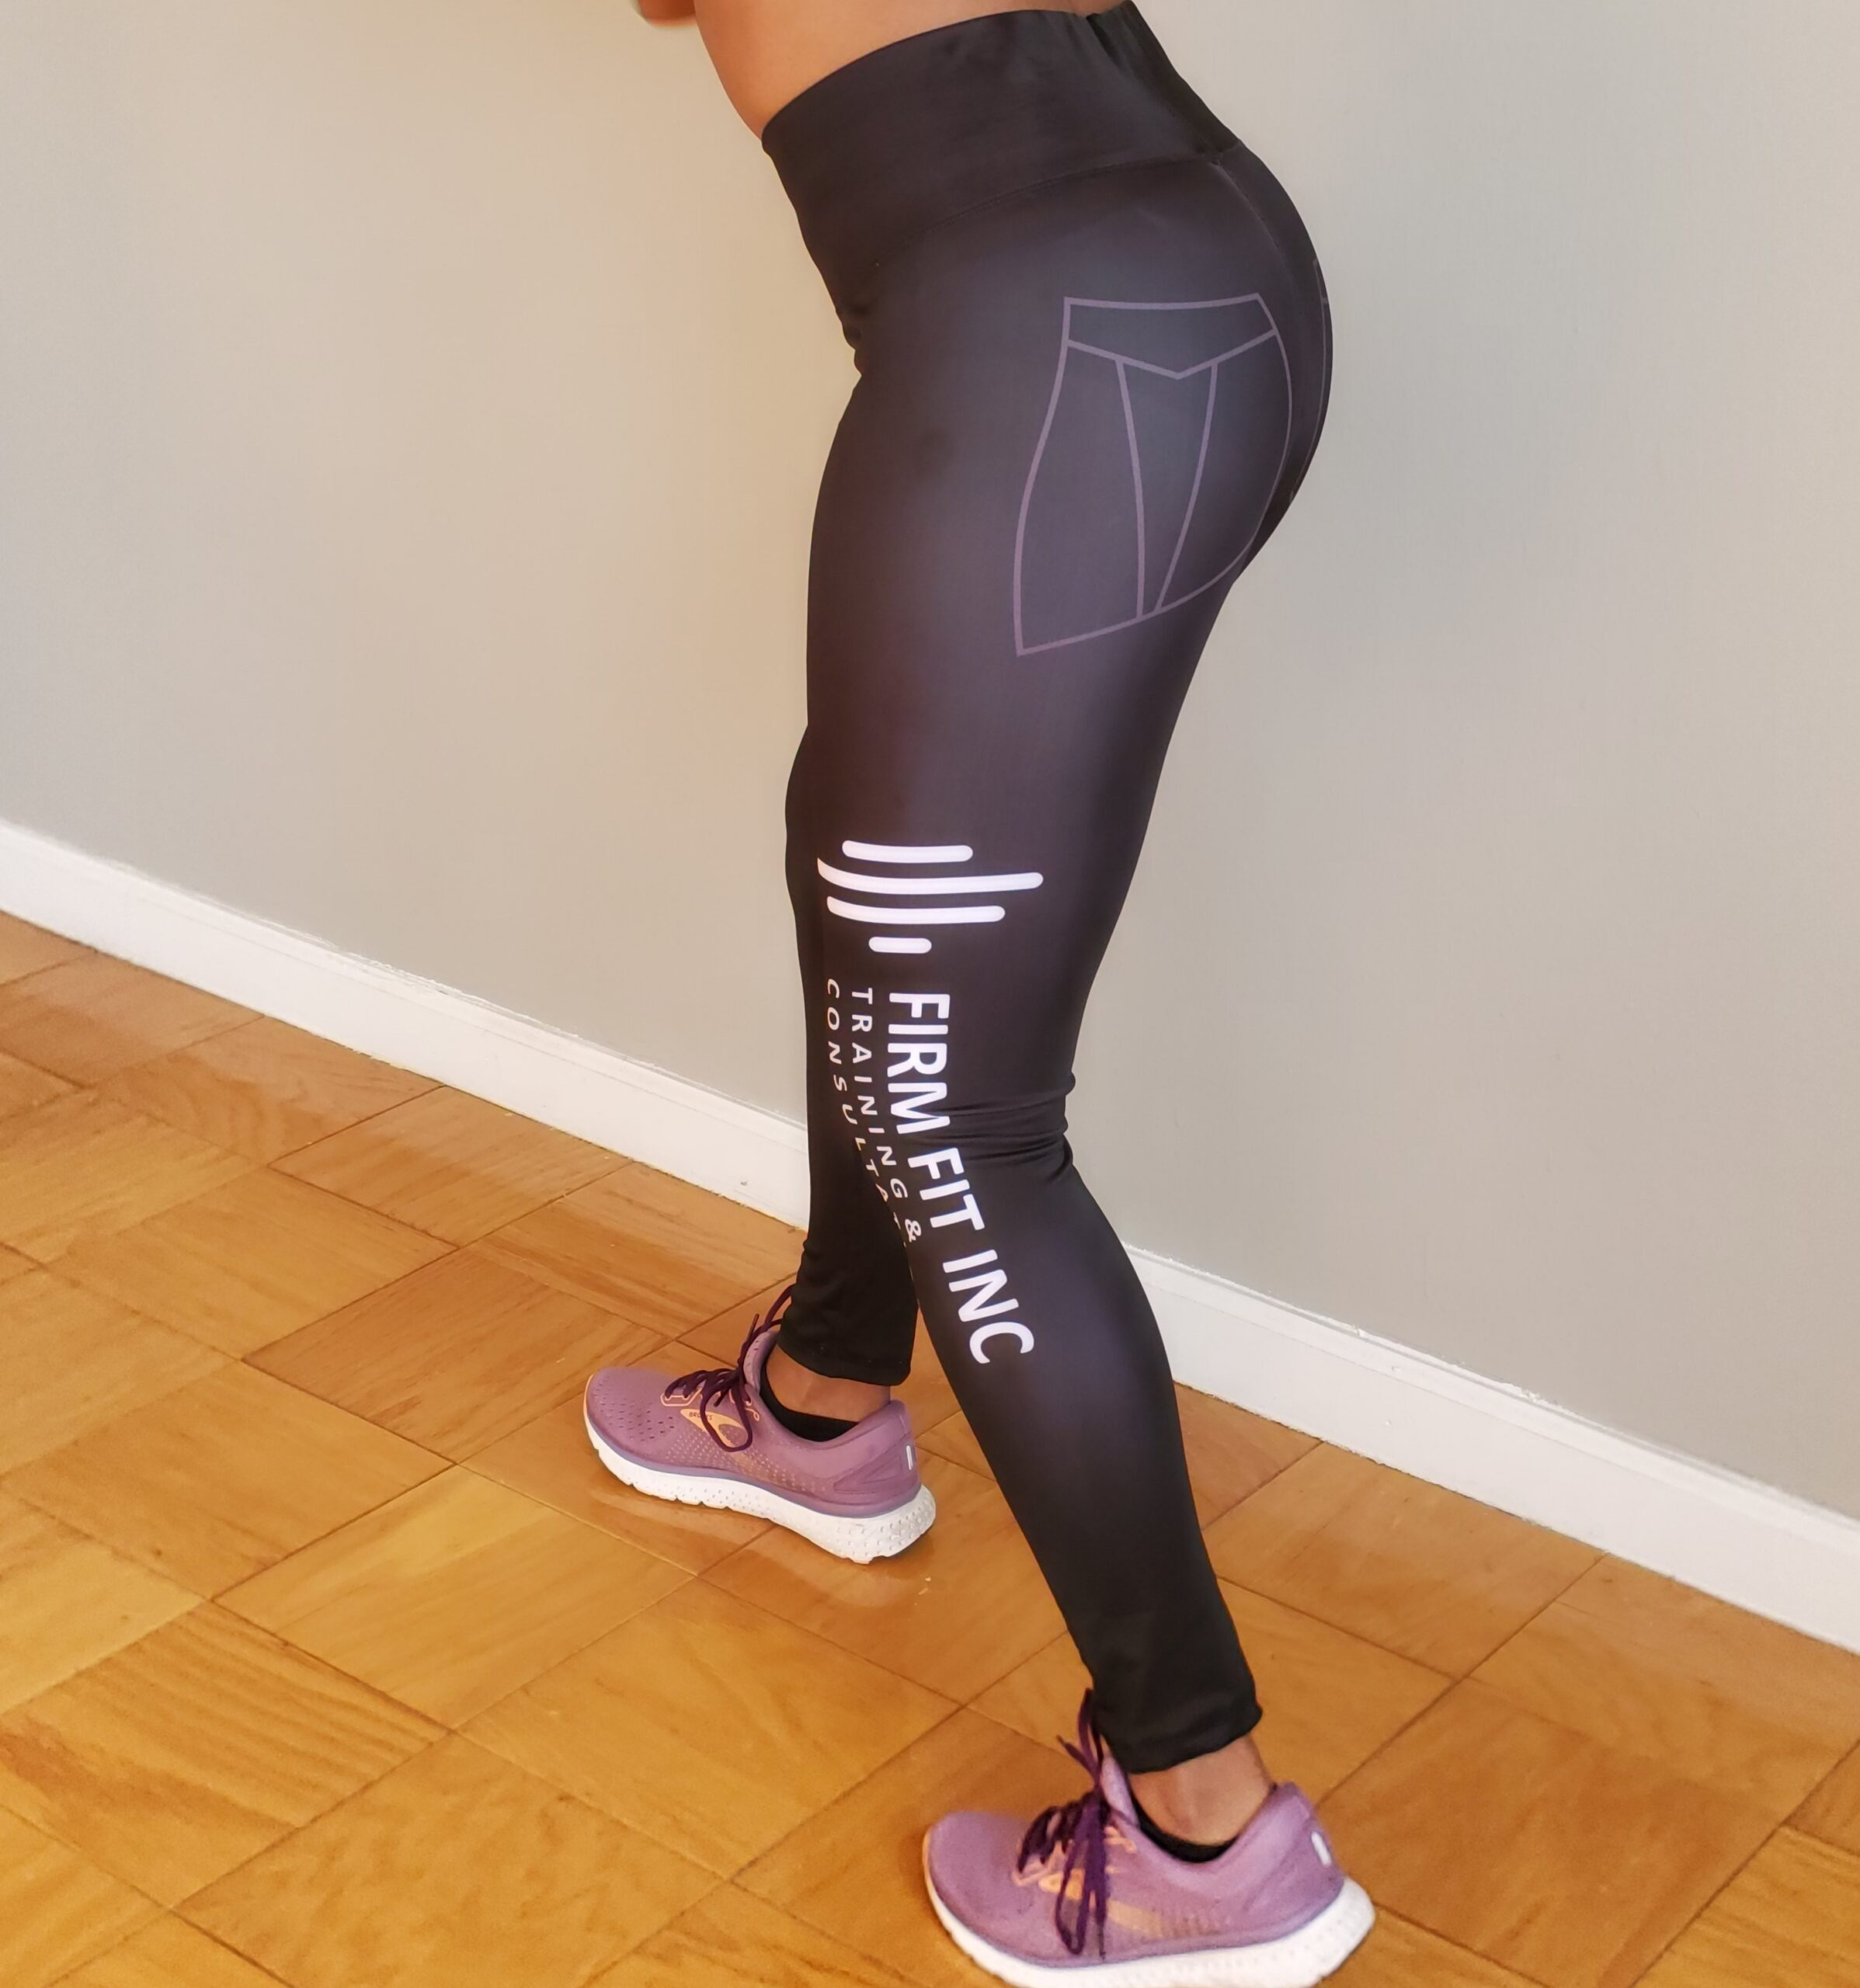 firmfitinc-womens-leggings-left-scaled.jpg